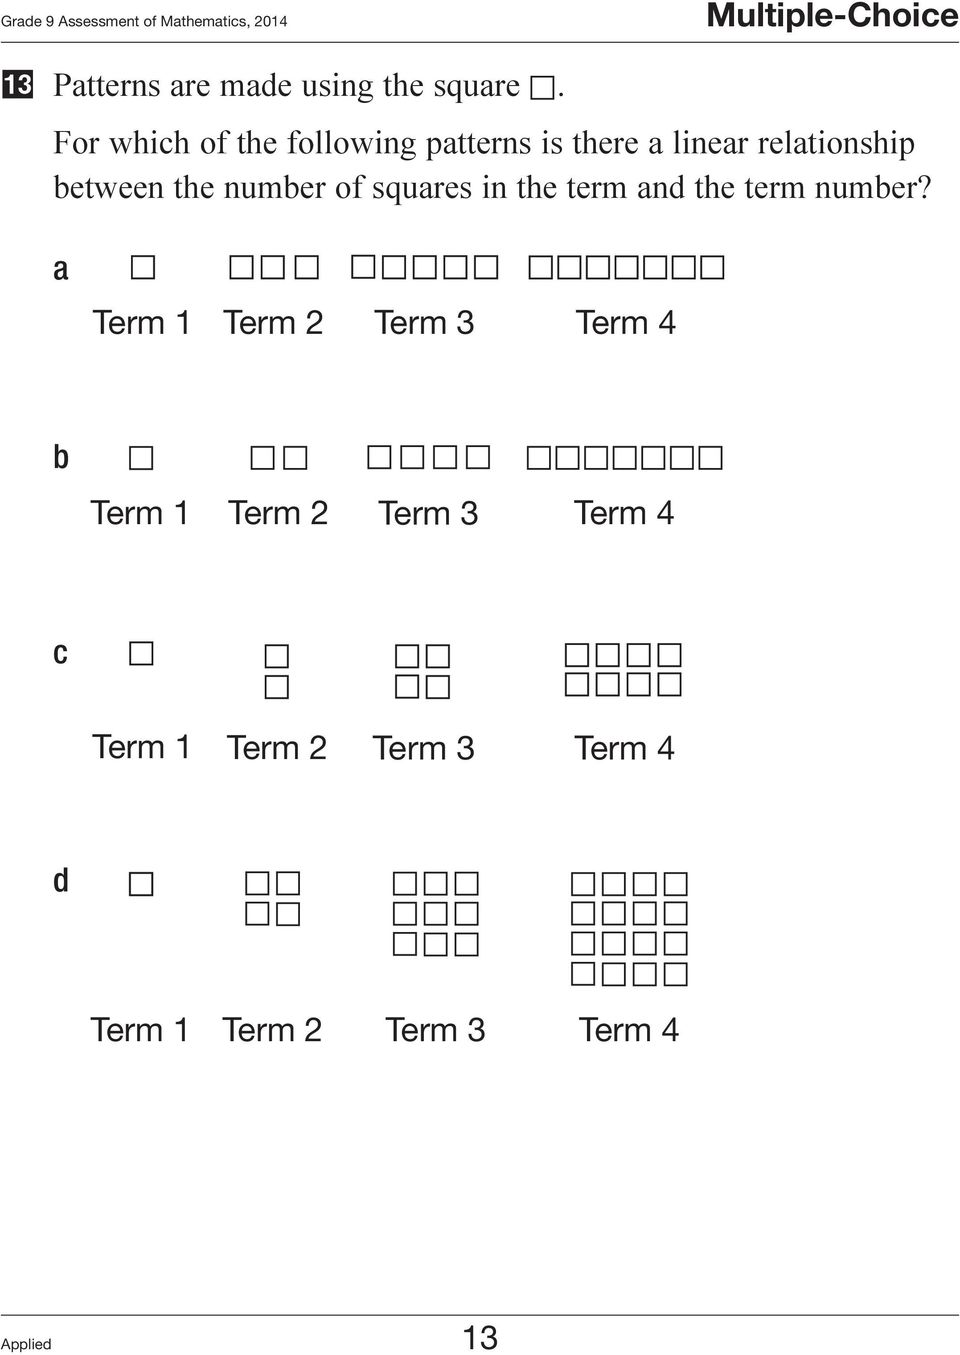 For which of the following patterns is there a linear relationship between the number of